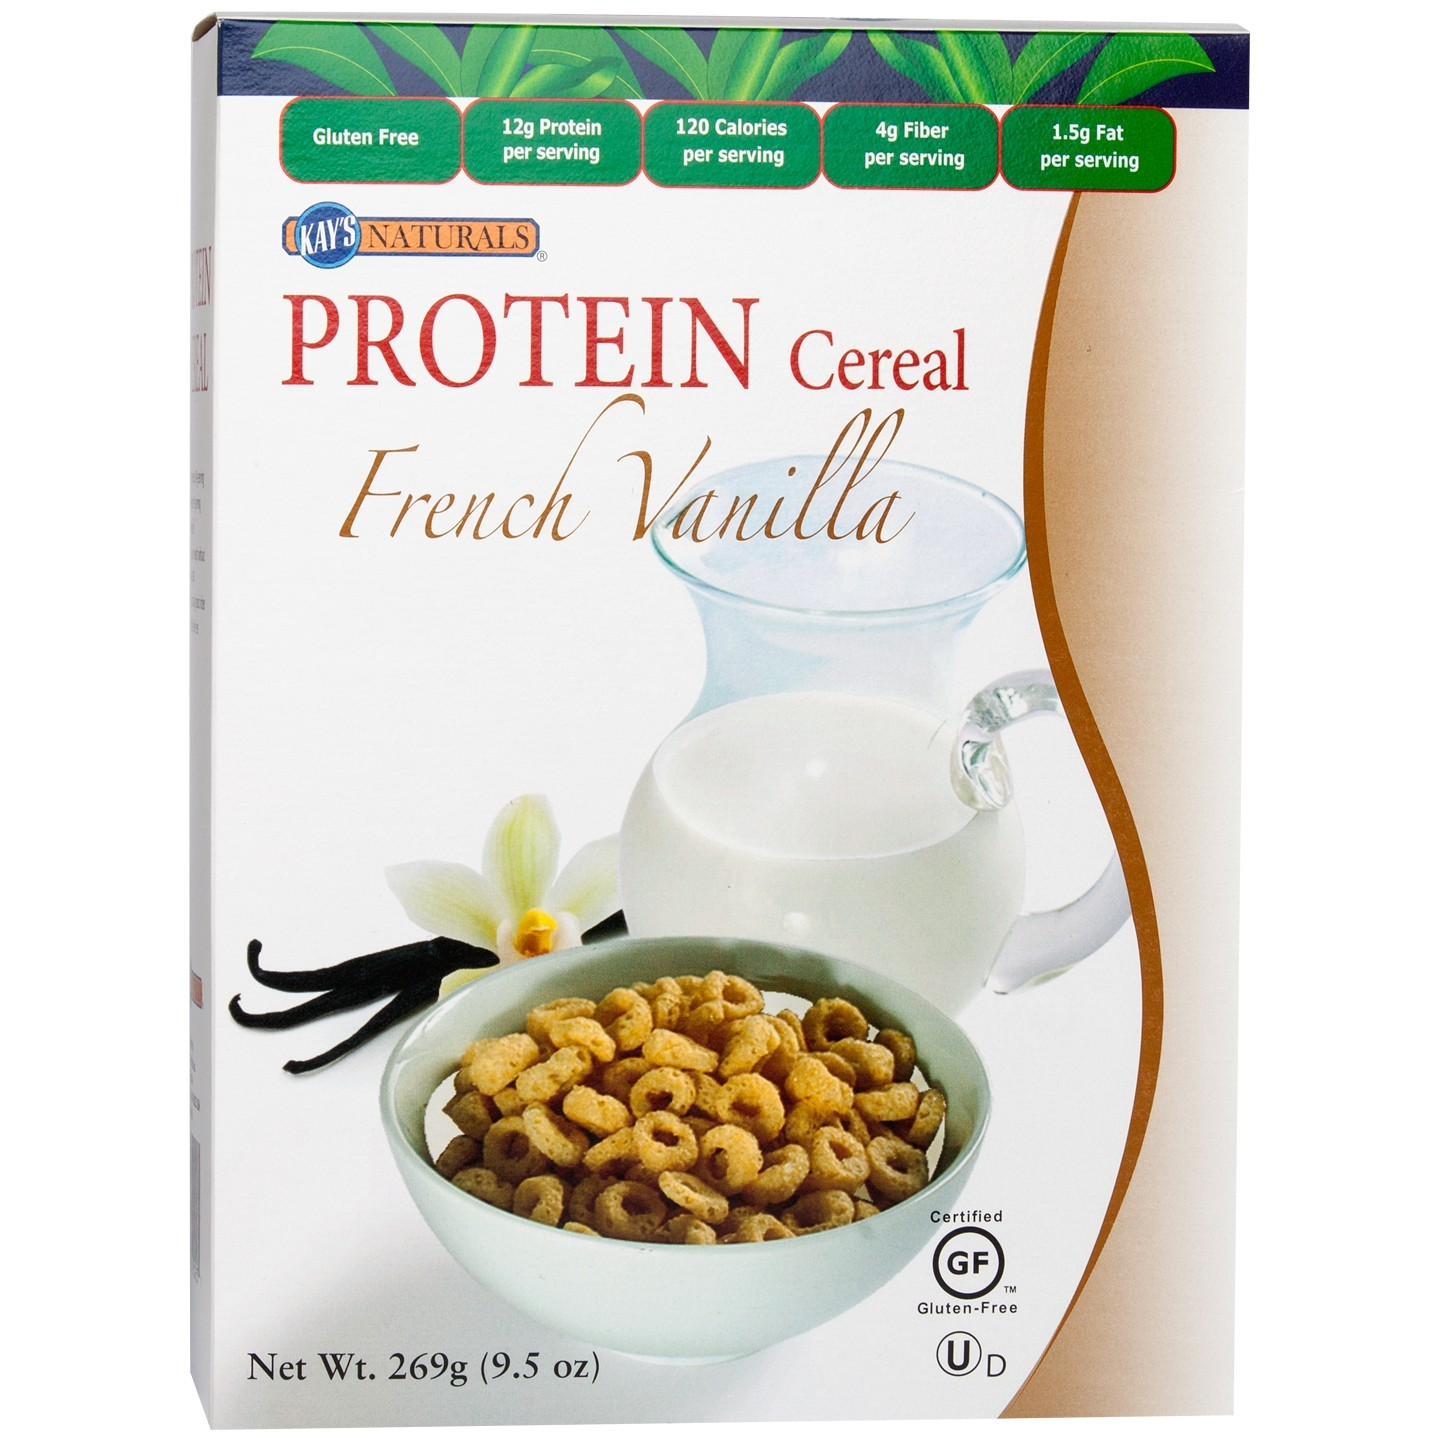 French Vanilla Cereal - 6ct